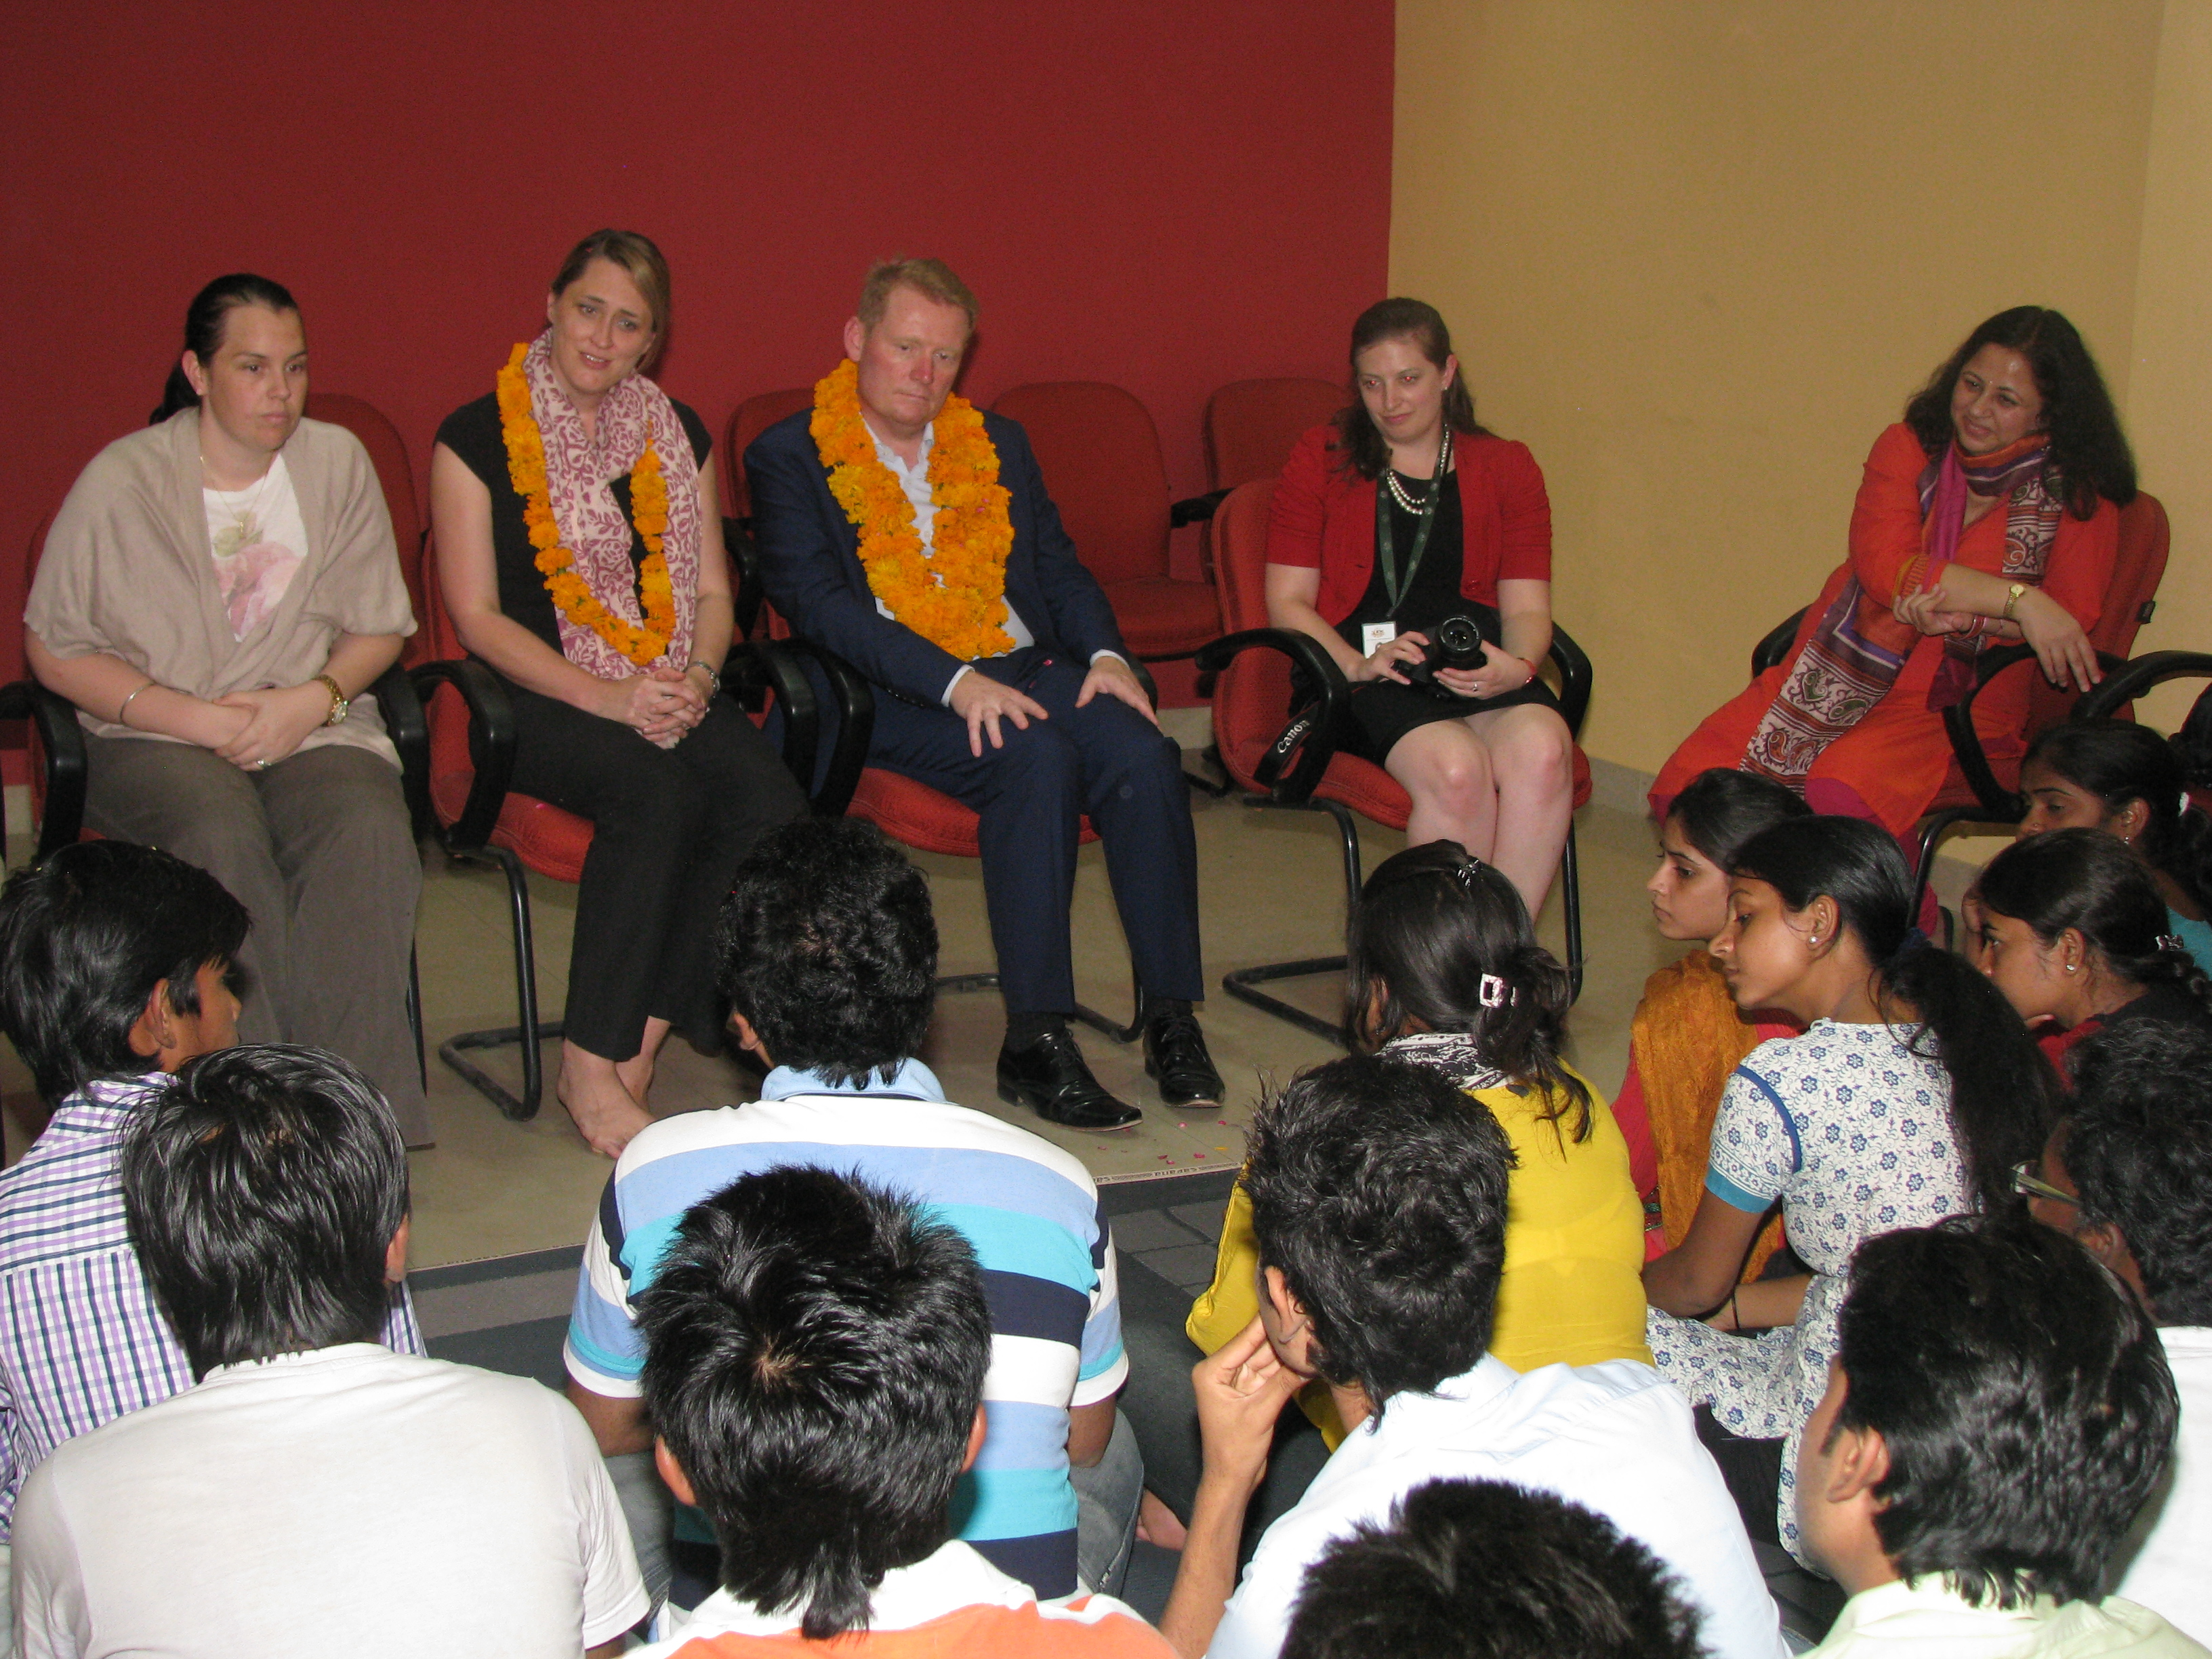 The Hon_ble Deputy High Commissioner interacts with the college students